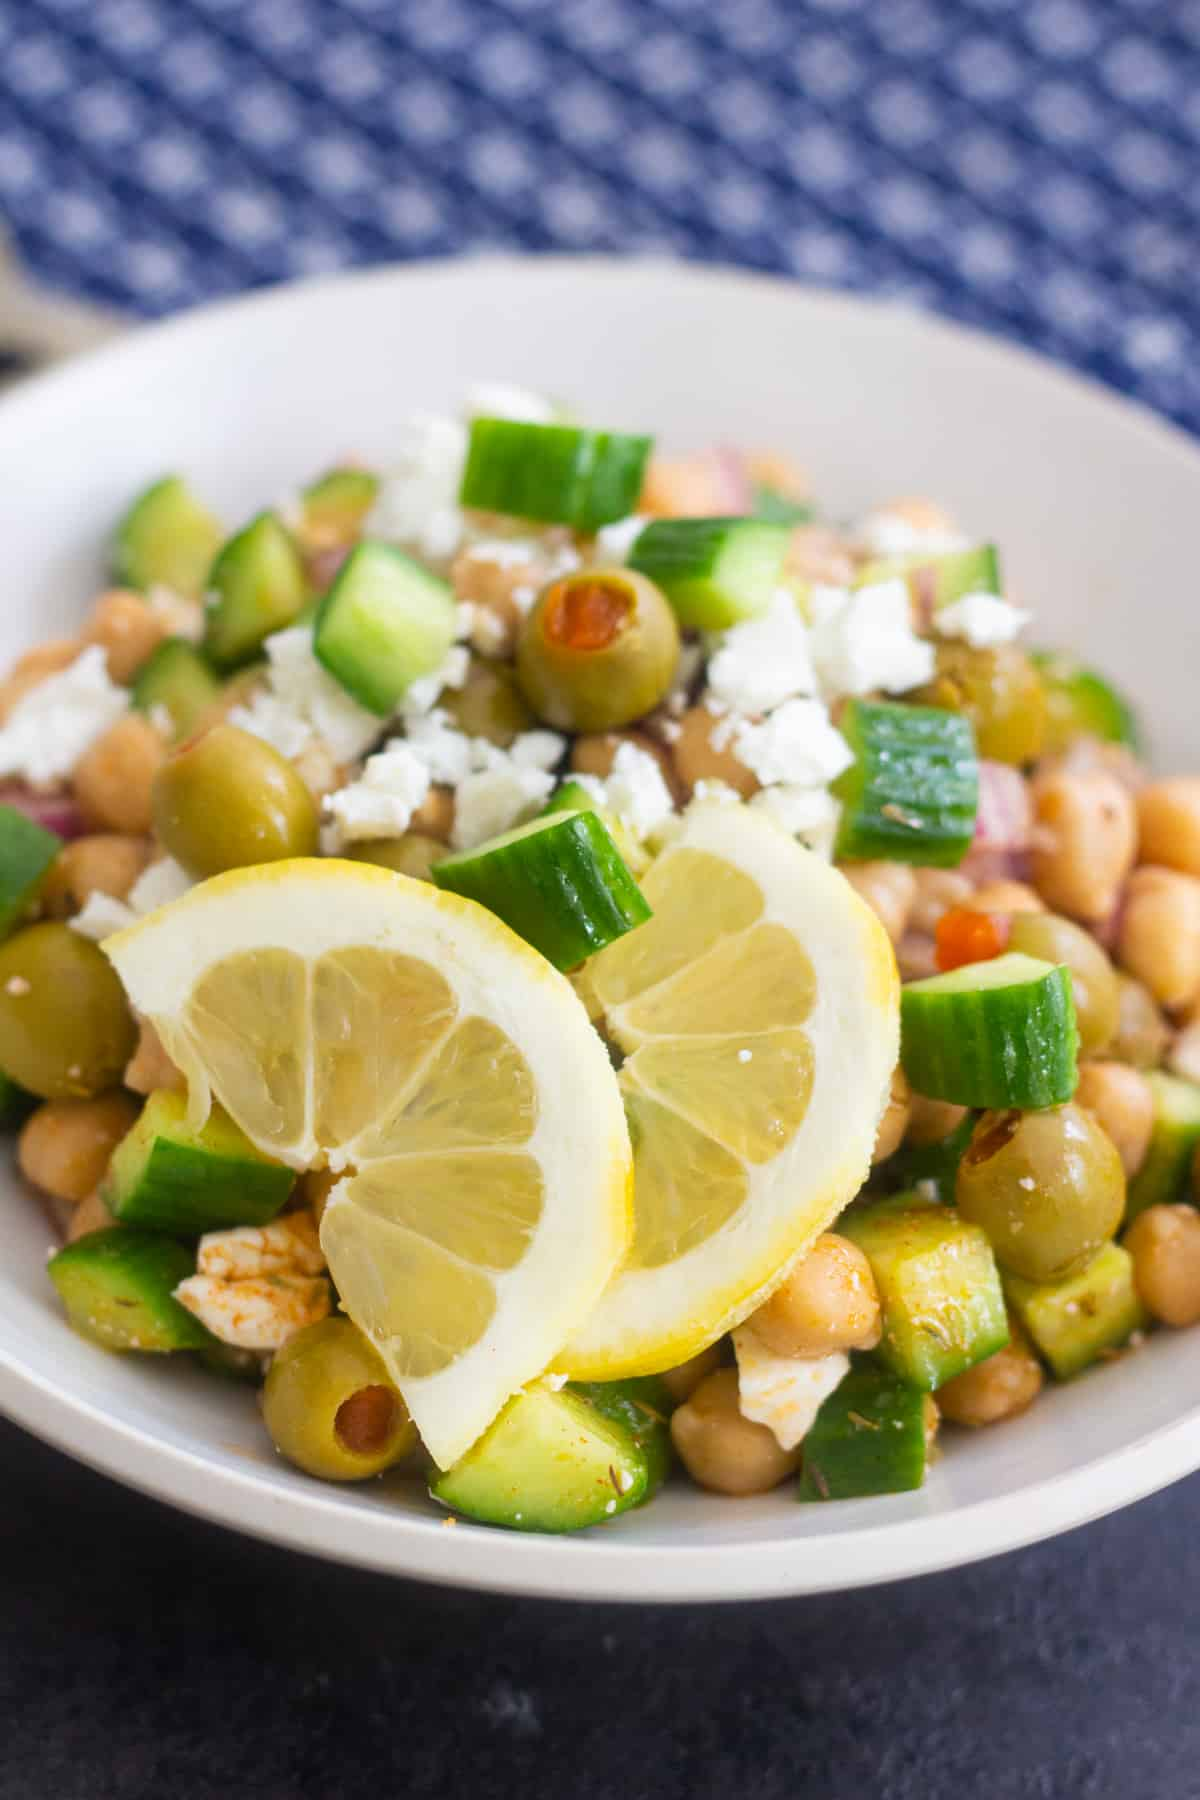 chickpea salad recipe is easy and topped with olives and feta cheese.